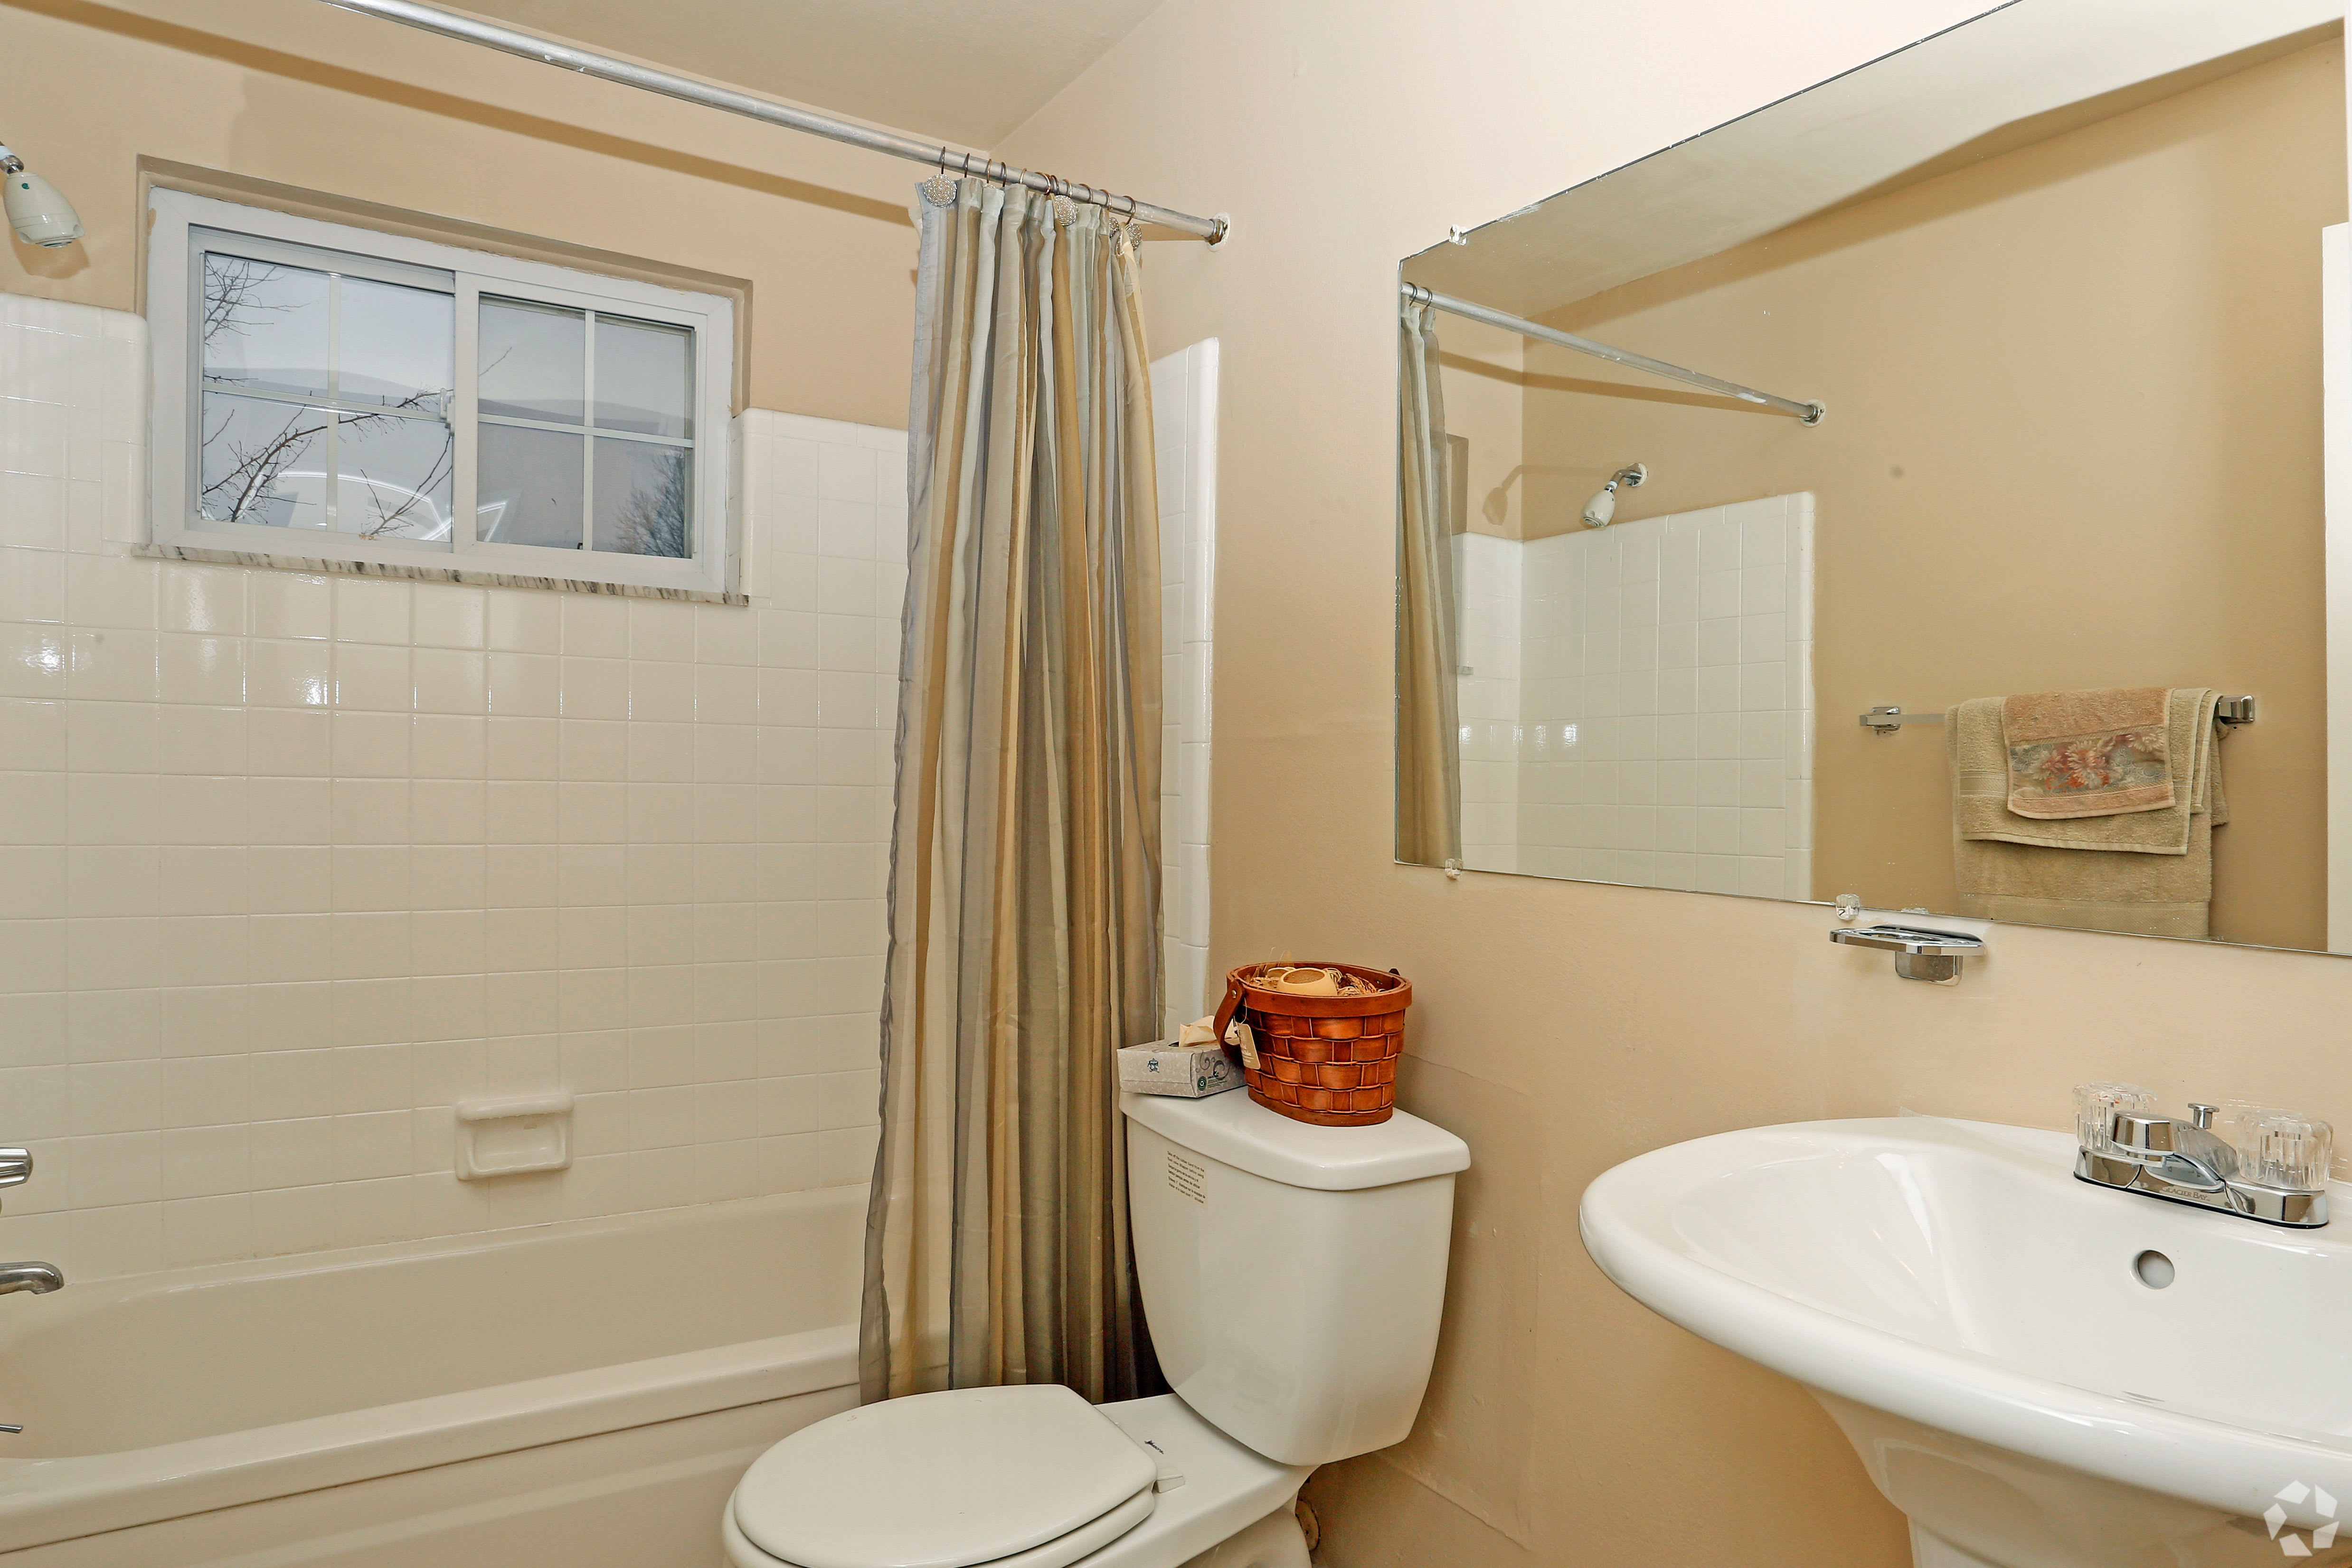 Hoover Square Apartments offers a modern bathroom at Hoover Square Apartments in Warren, Michigan